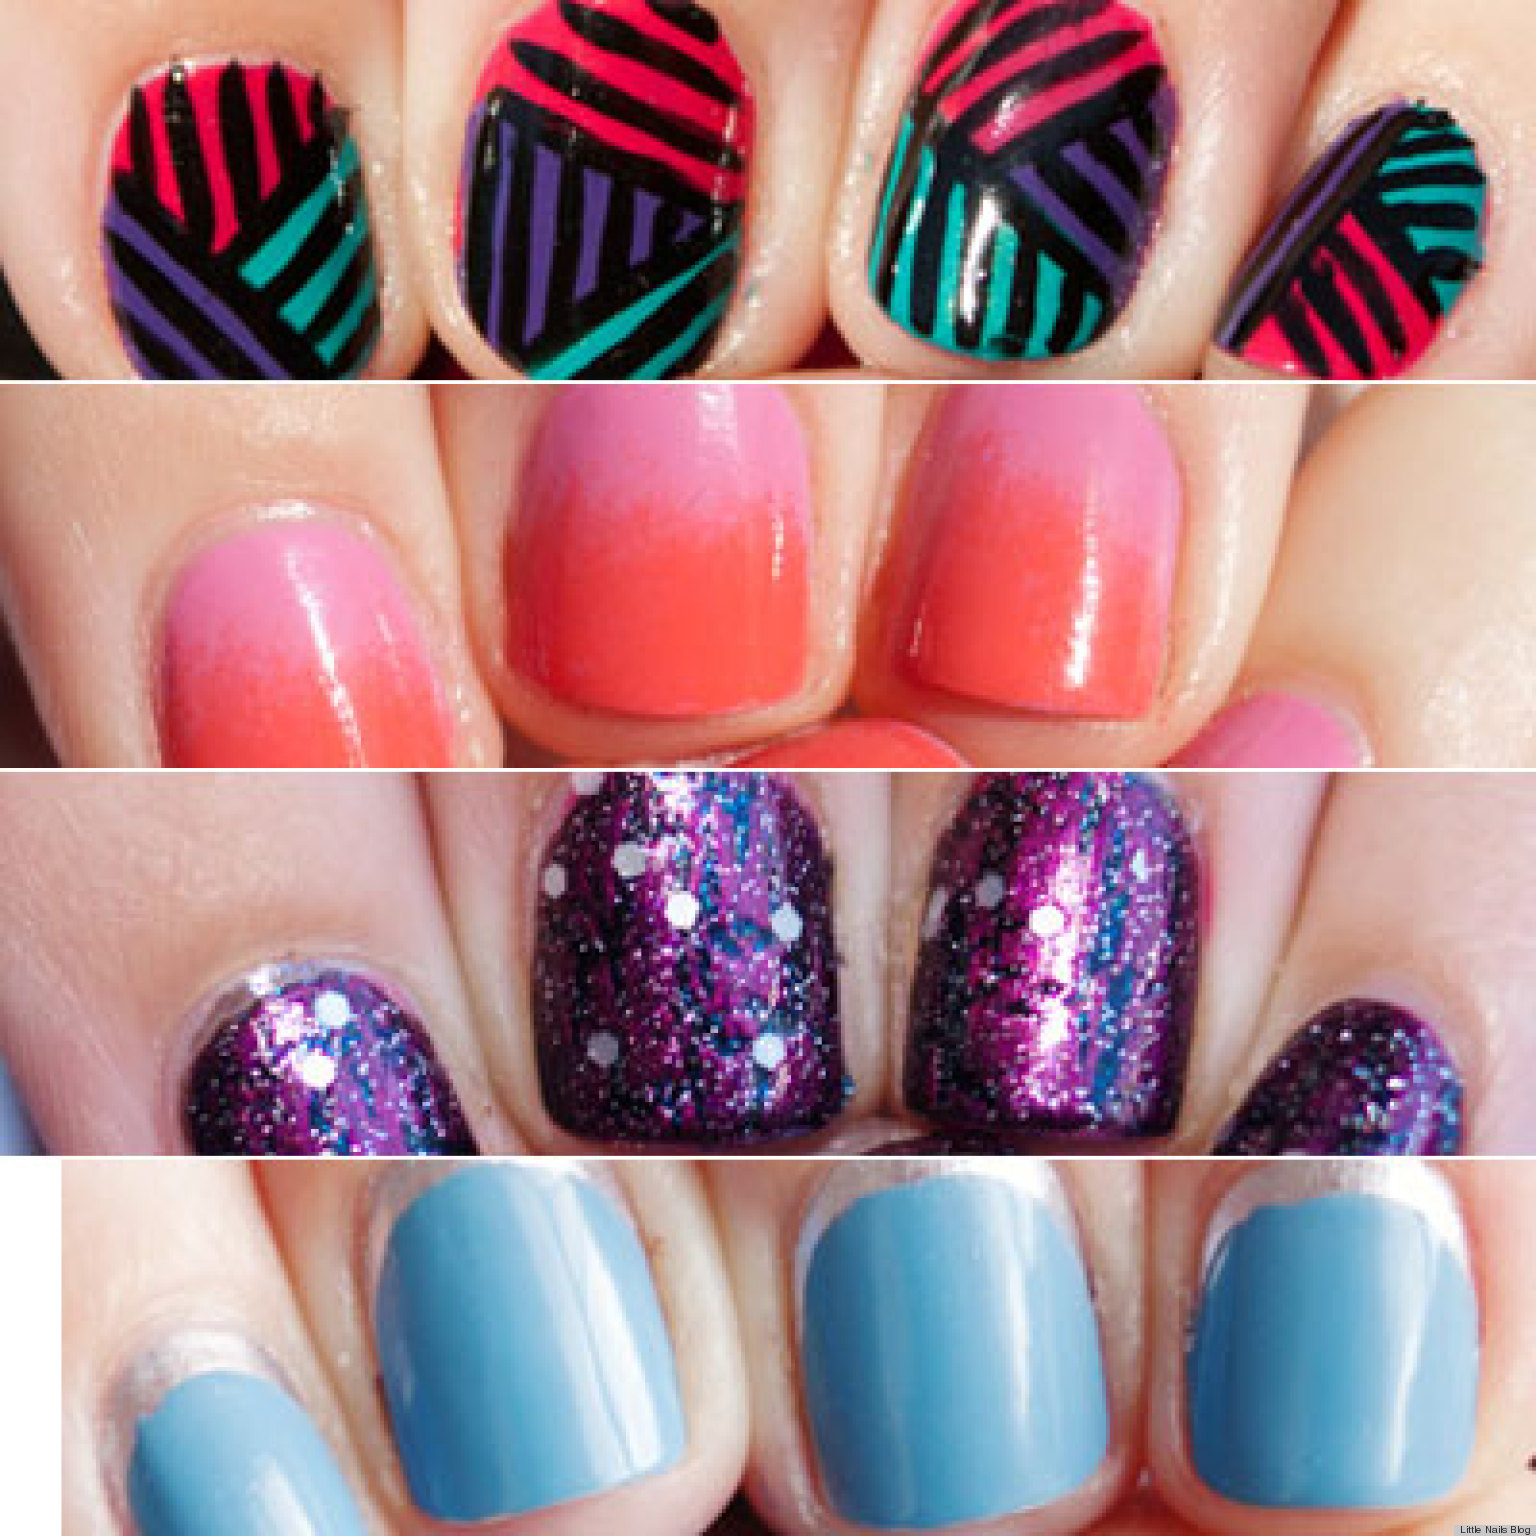 13 nail art ideas for teeny tiny fingertips photos huffpost prinsesfo Image collections